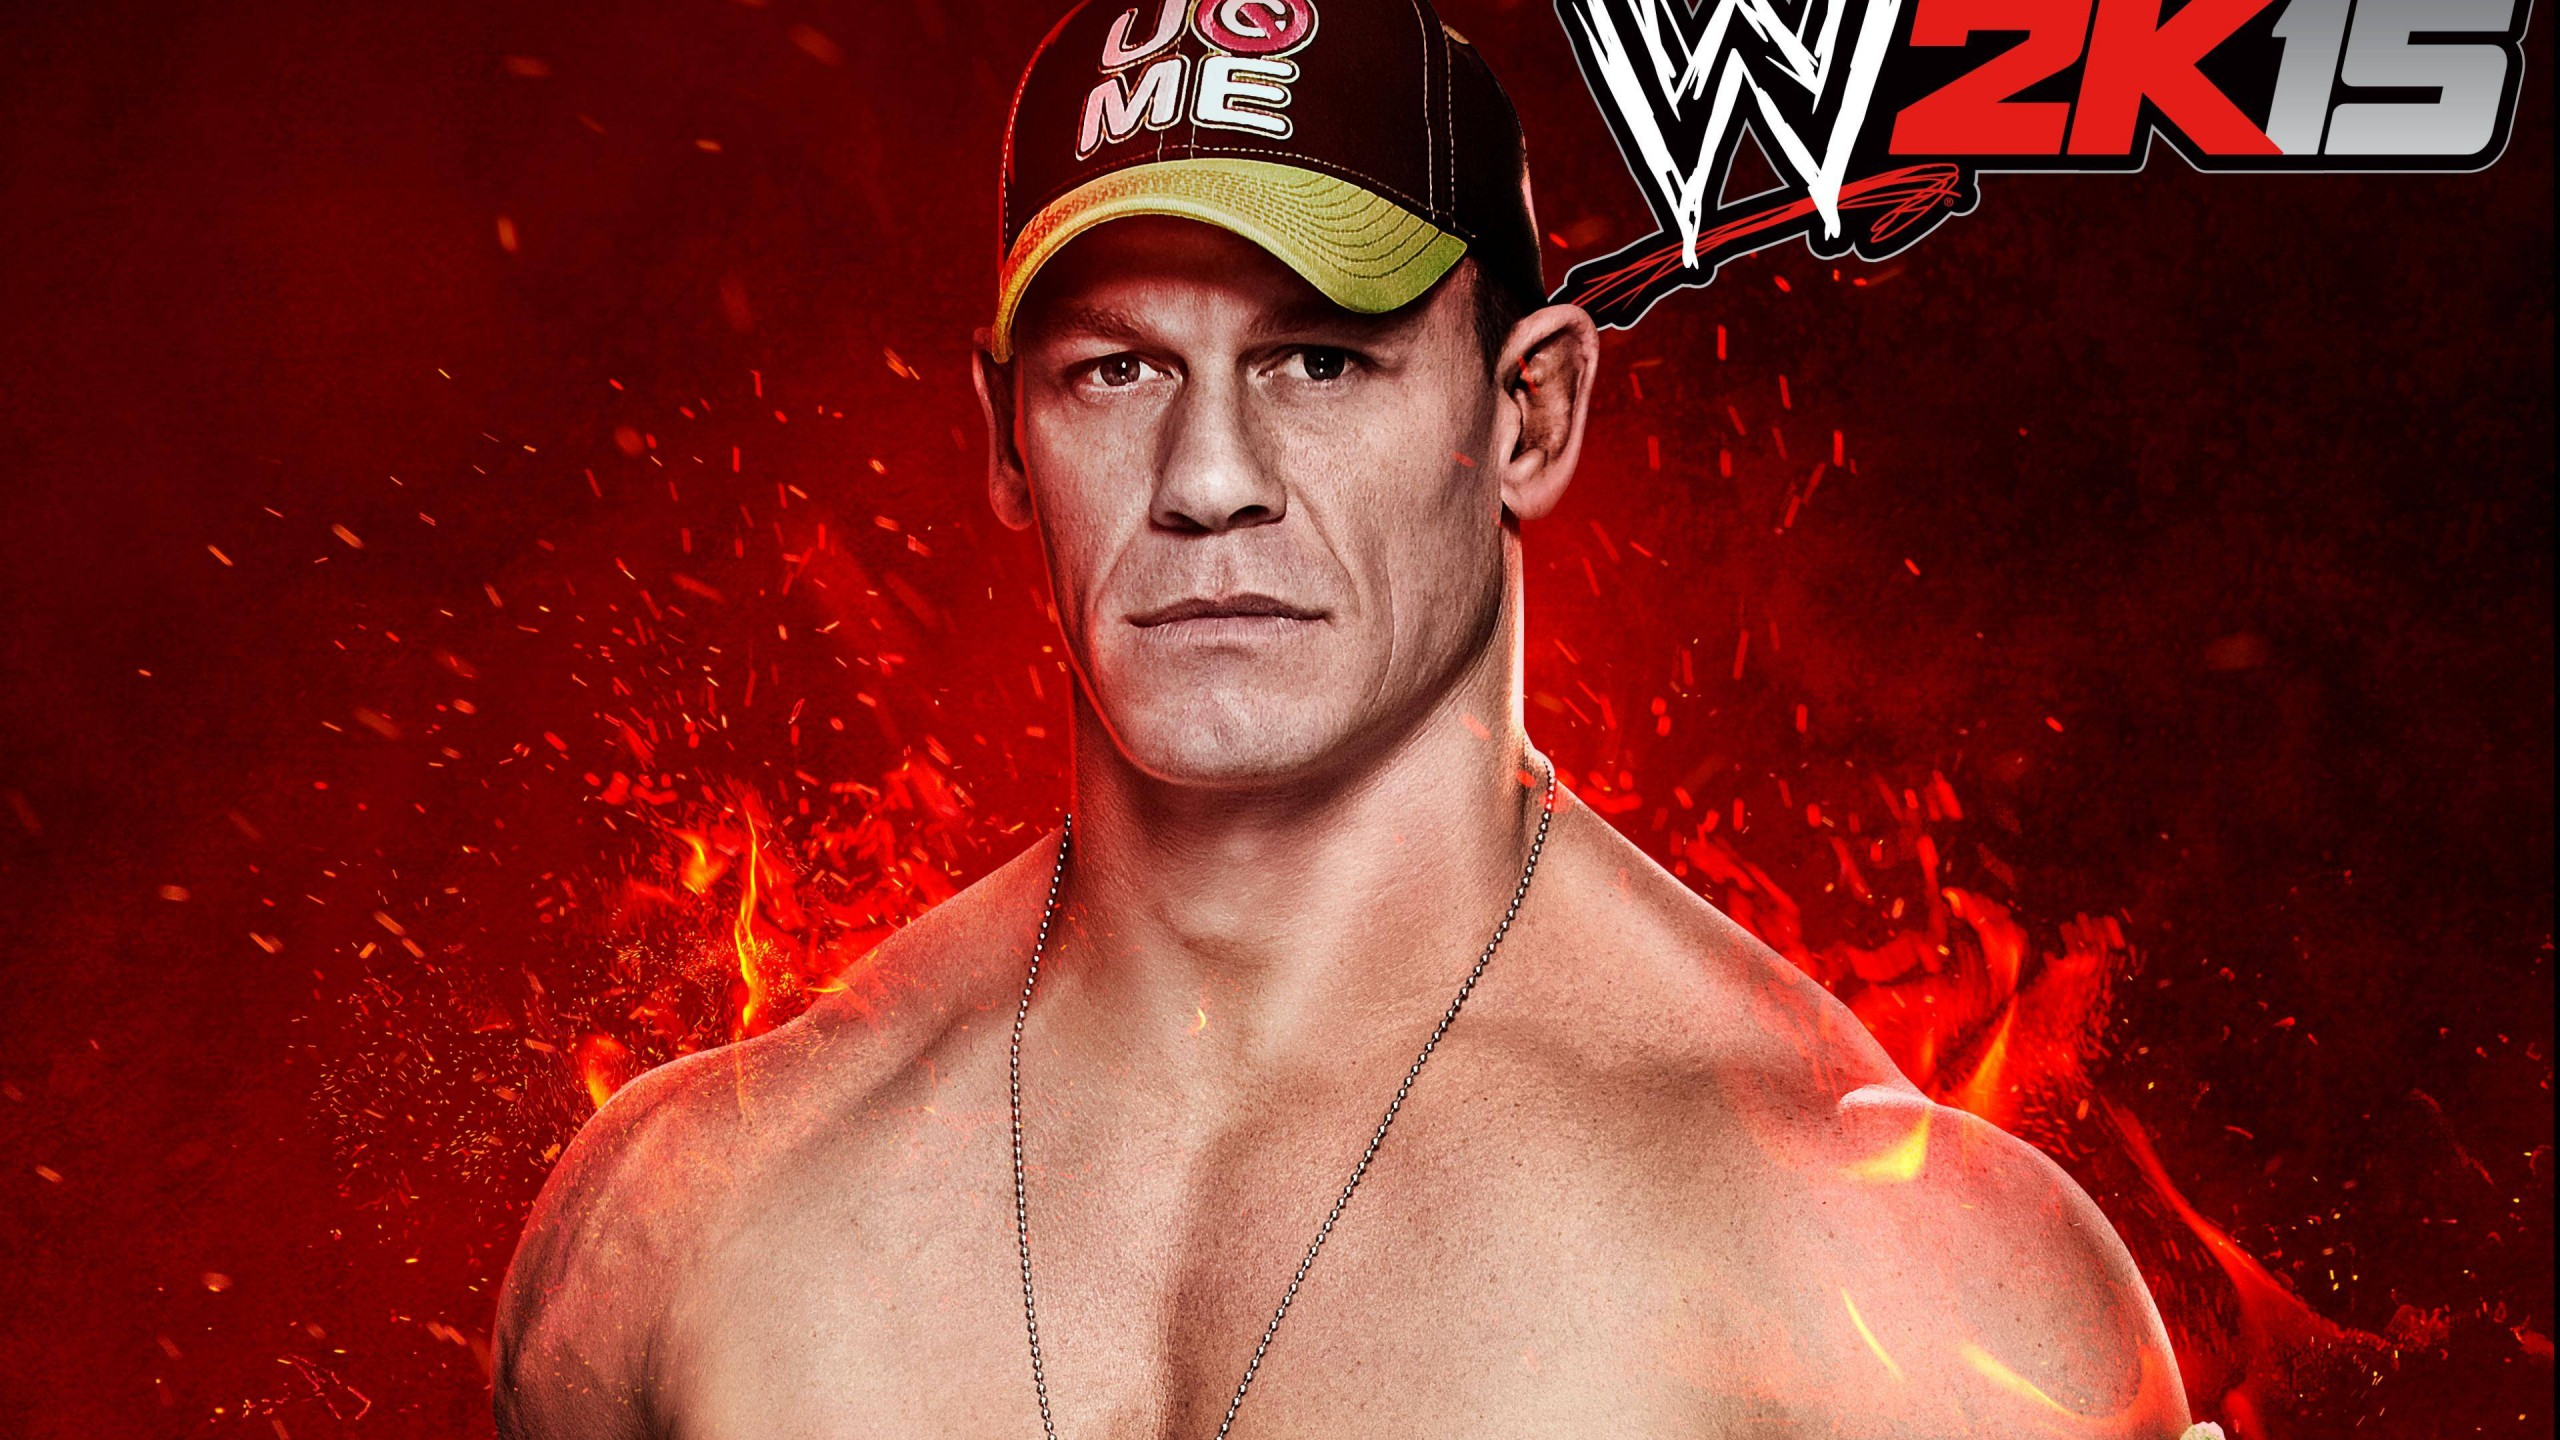 WWE John Cena Wallpapers 2016 HD Wallpapers HD Backgrounds